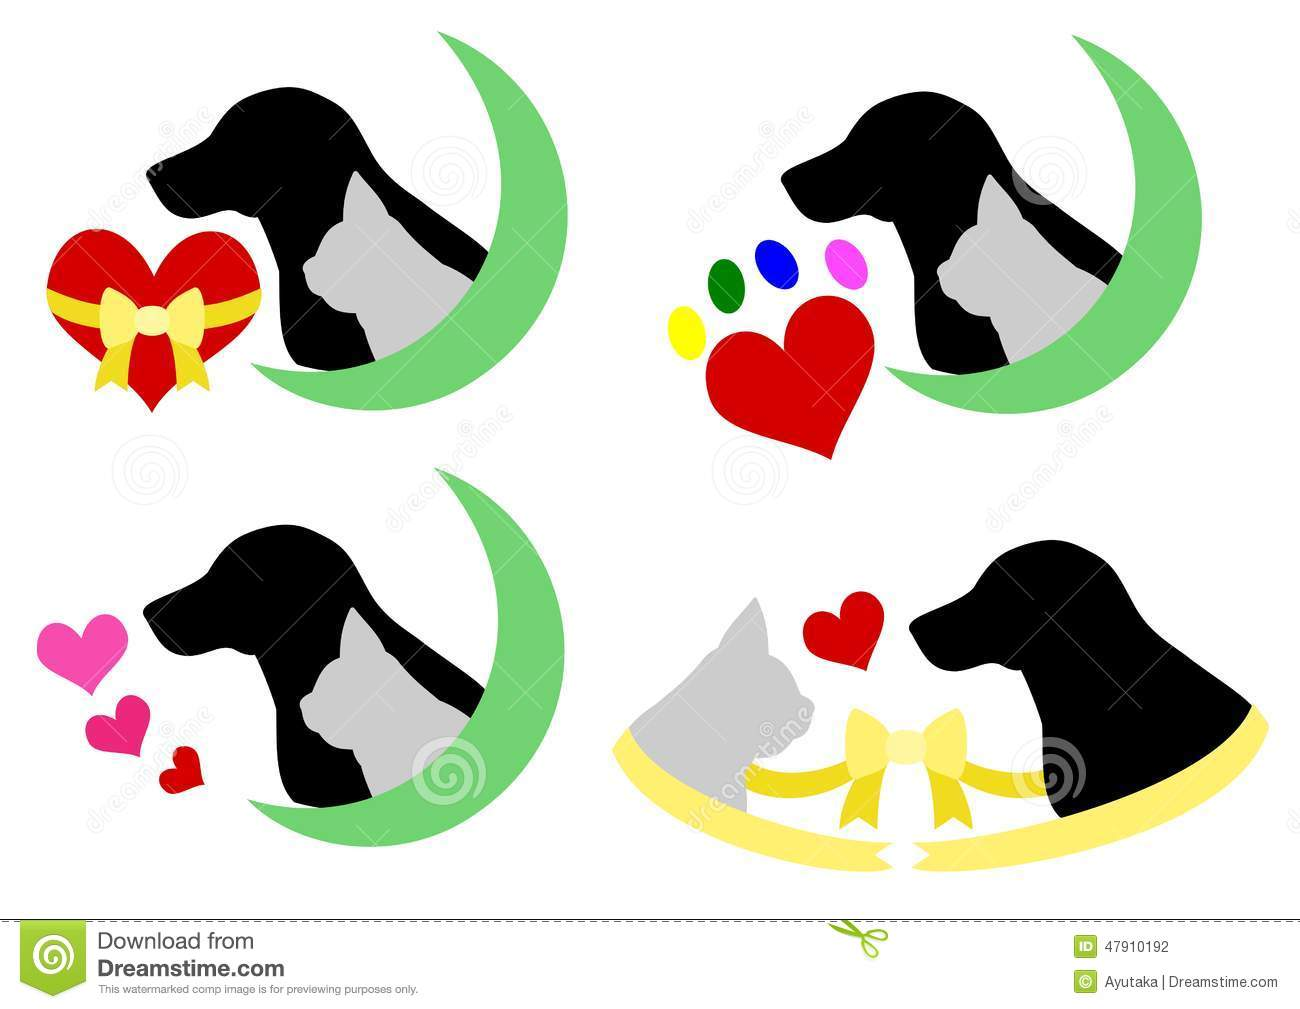 cat dog heart silhouette hospital black moon green protection